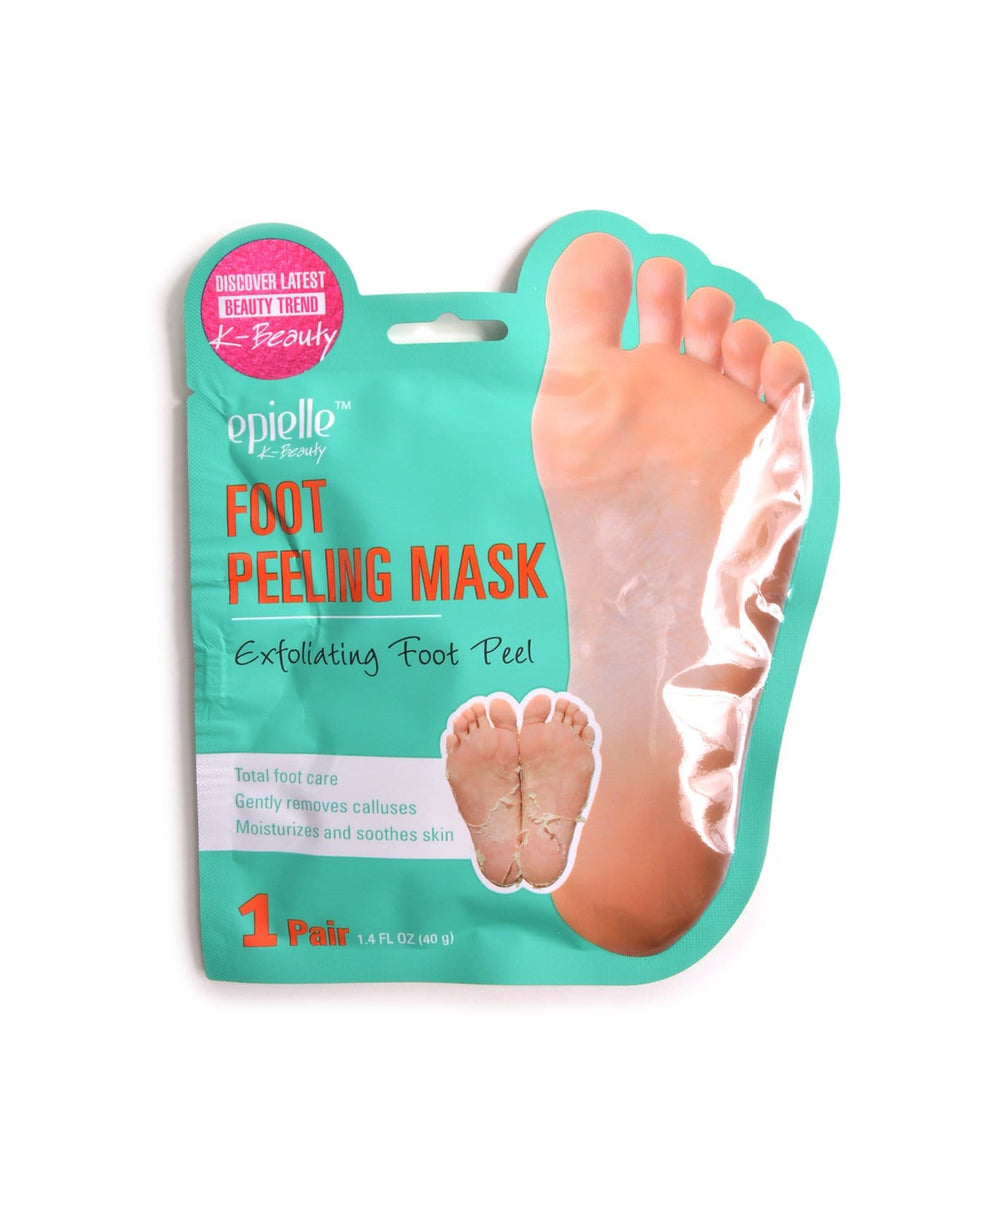 Epielle Foot Peeling Mask